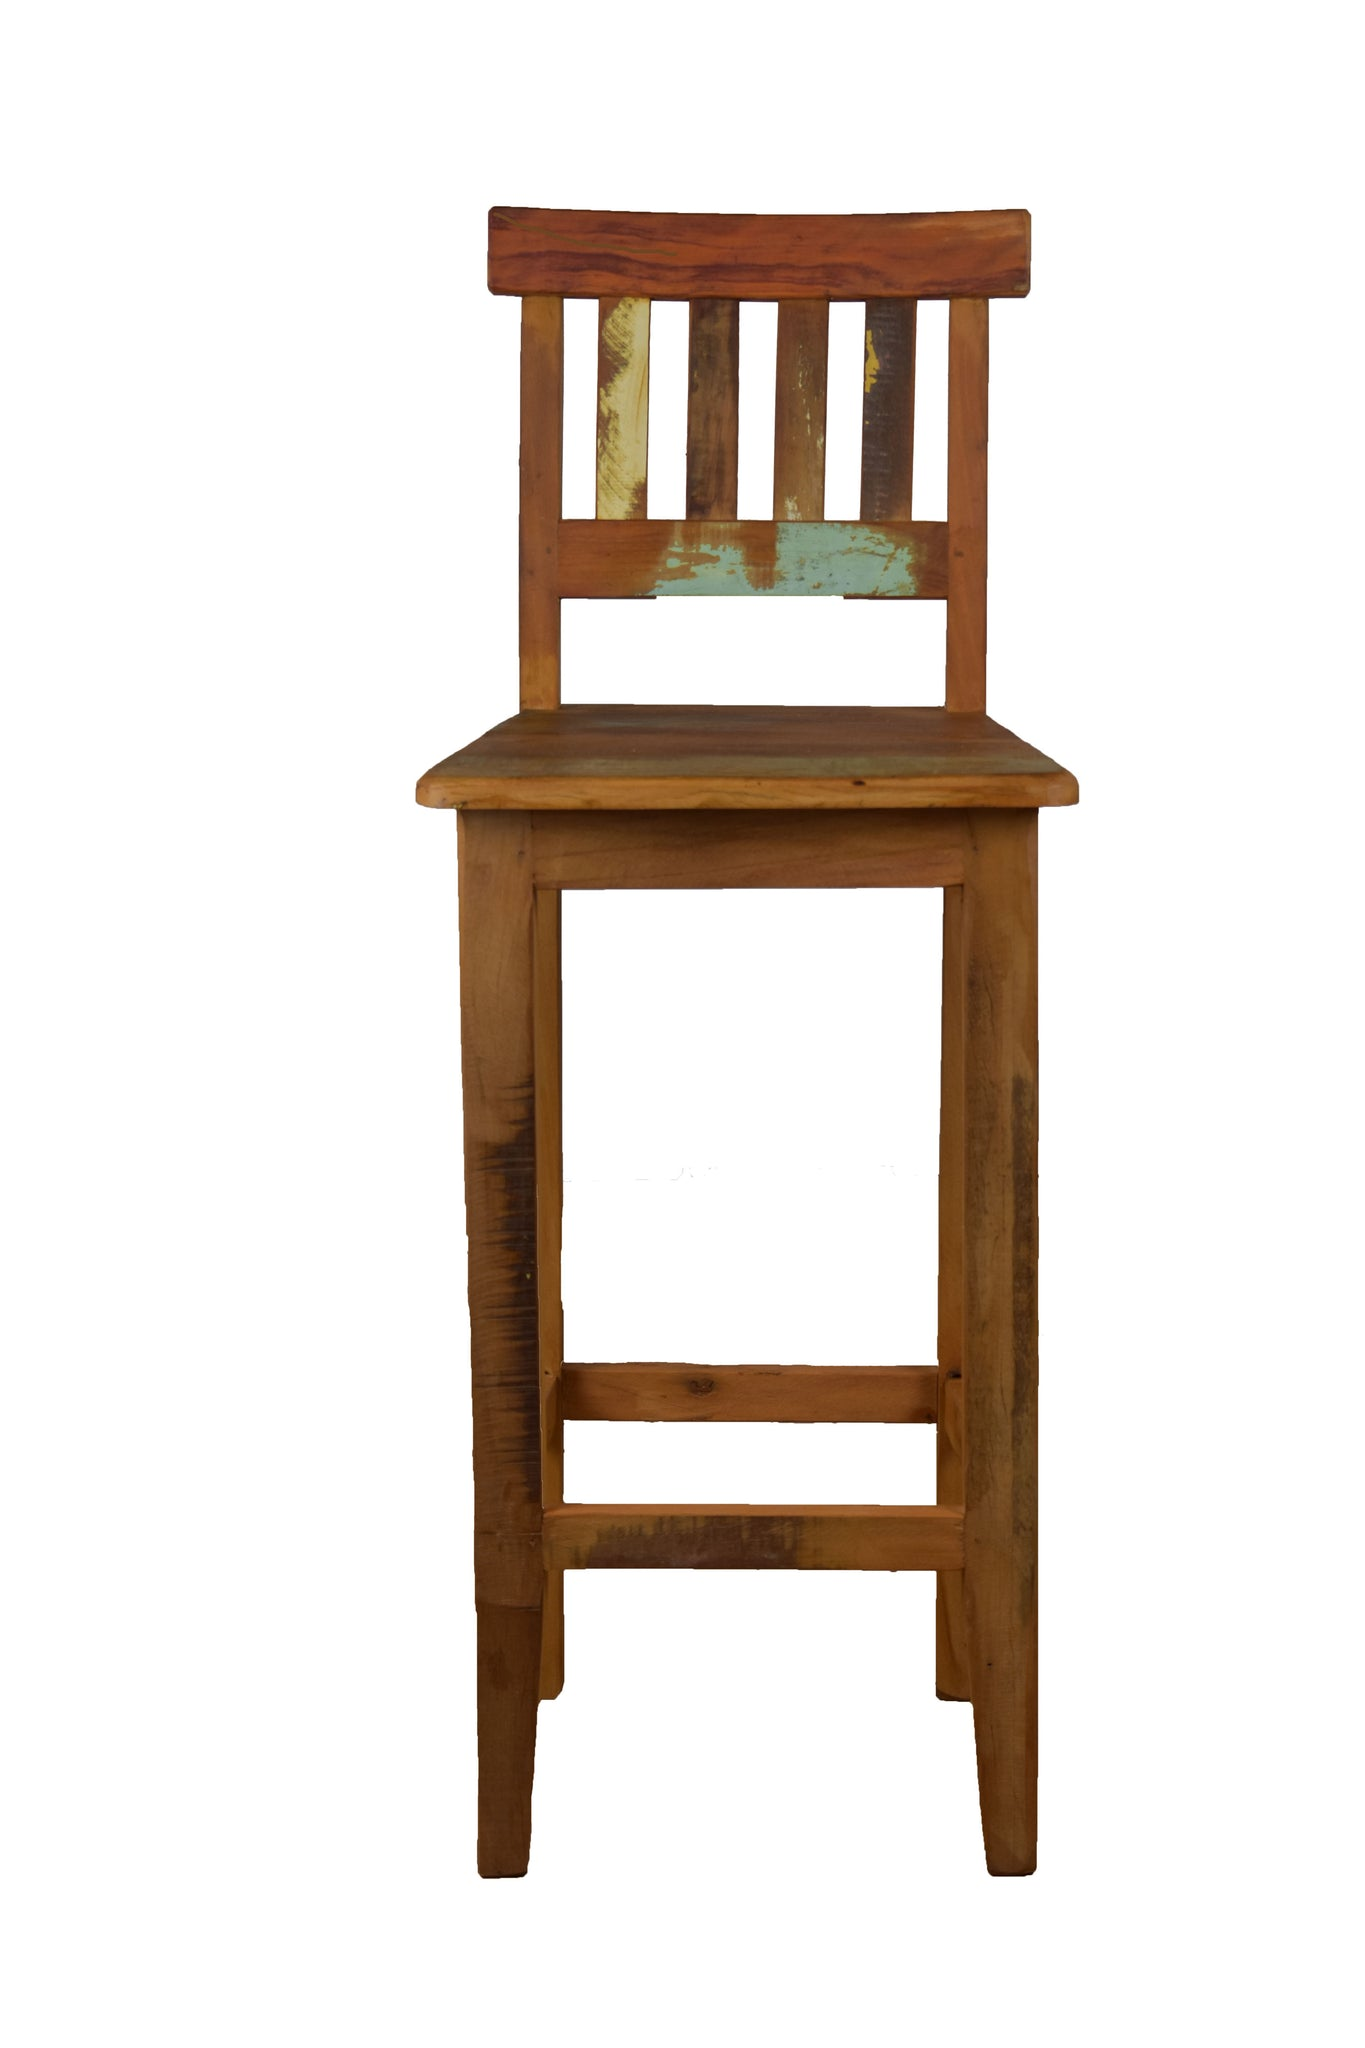 chair, reclaimed wood, living room chair, outdoor chairs, home stores furniture,